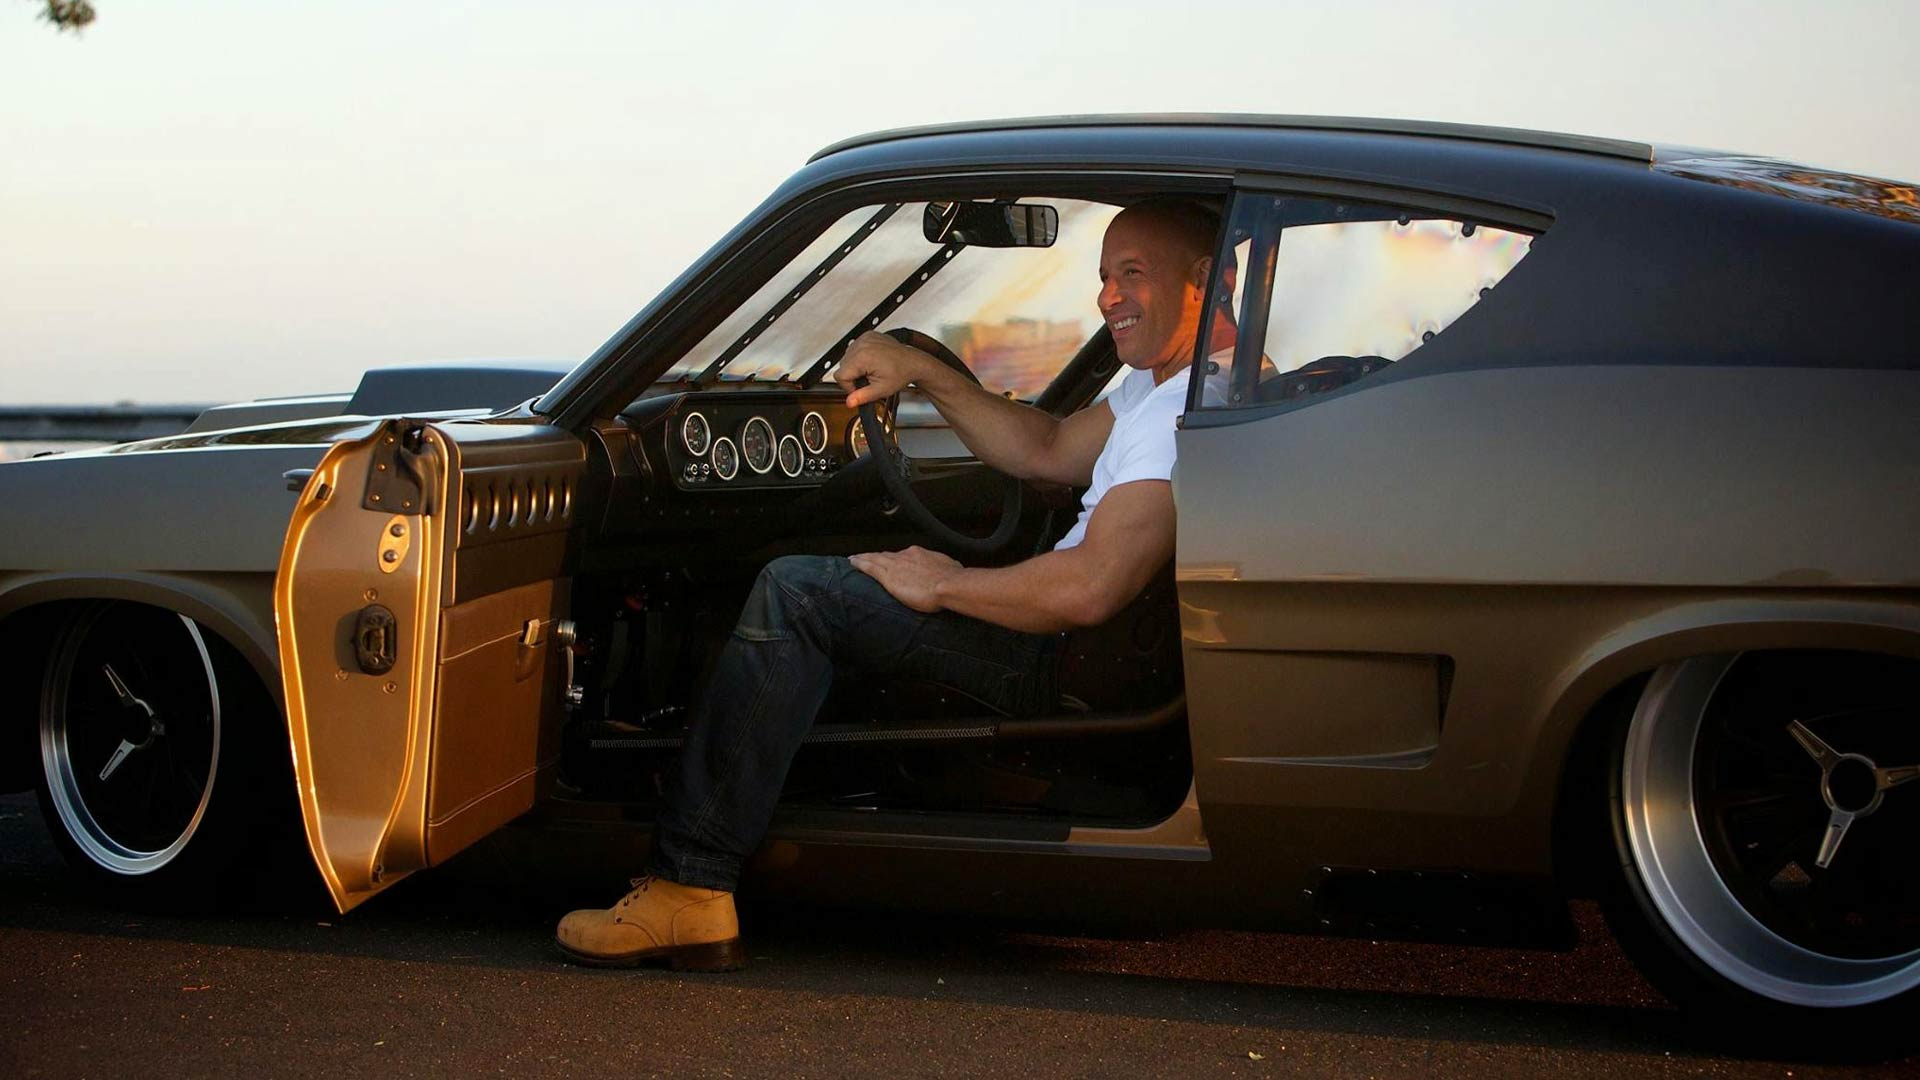 Fast Furious Cars Wallpapers Images amp Pictures   Becuo 1920x1080